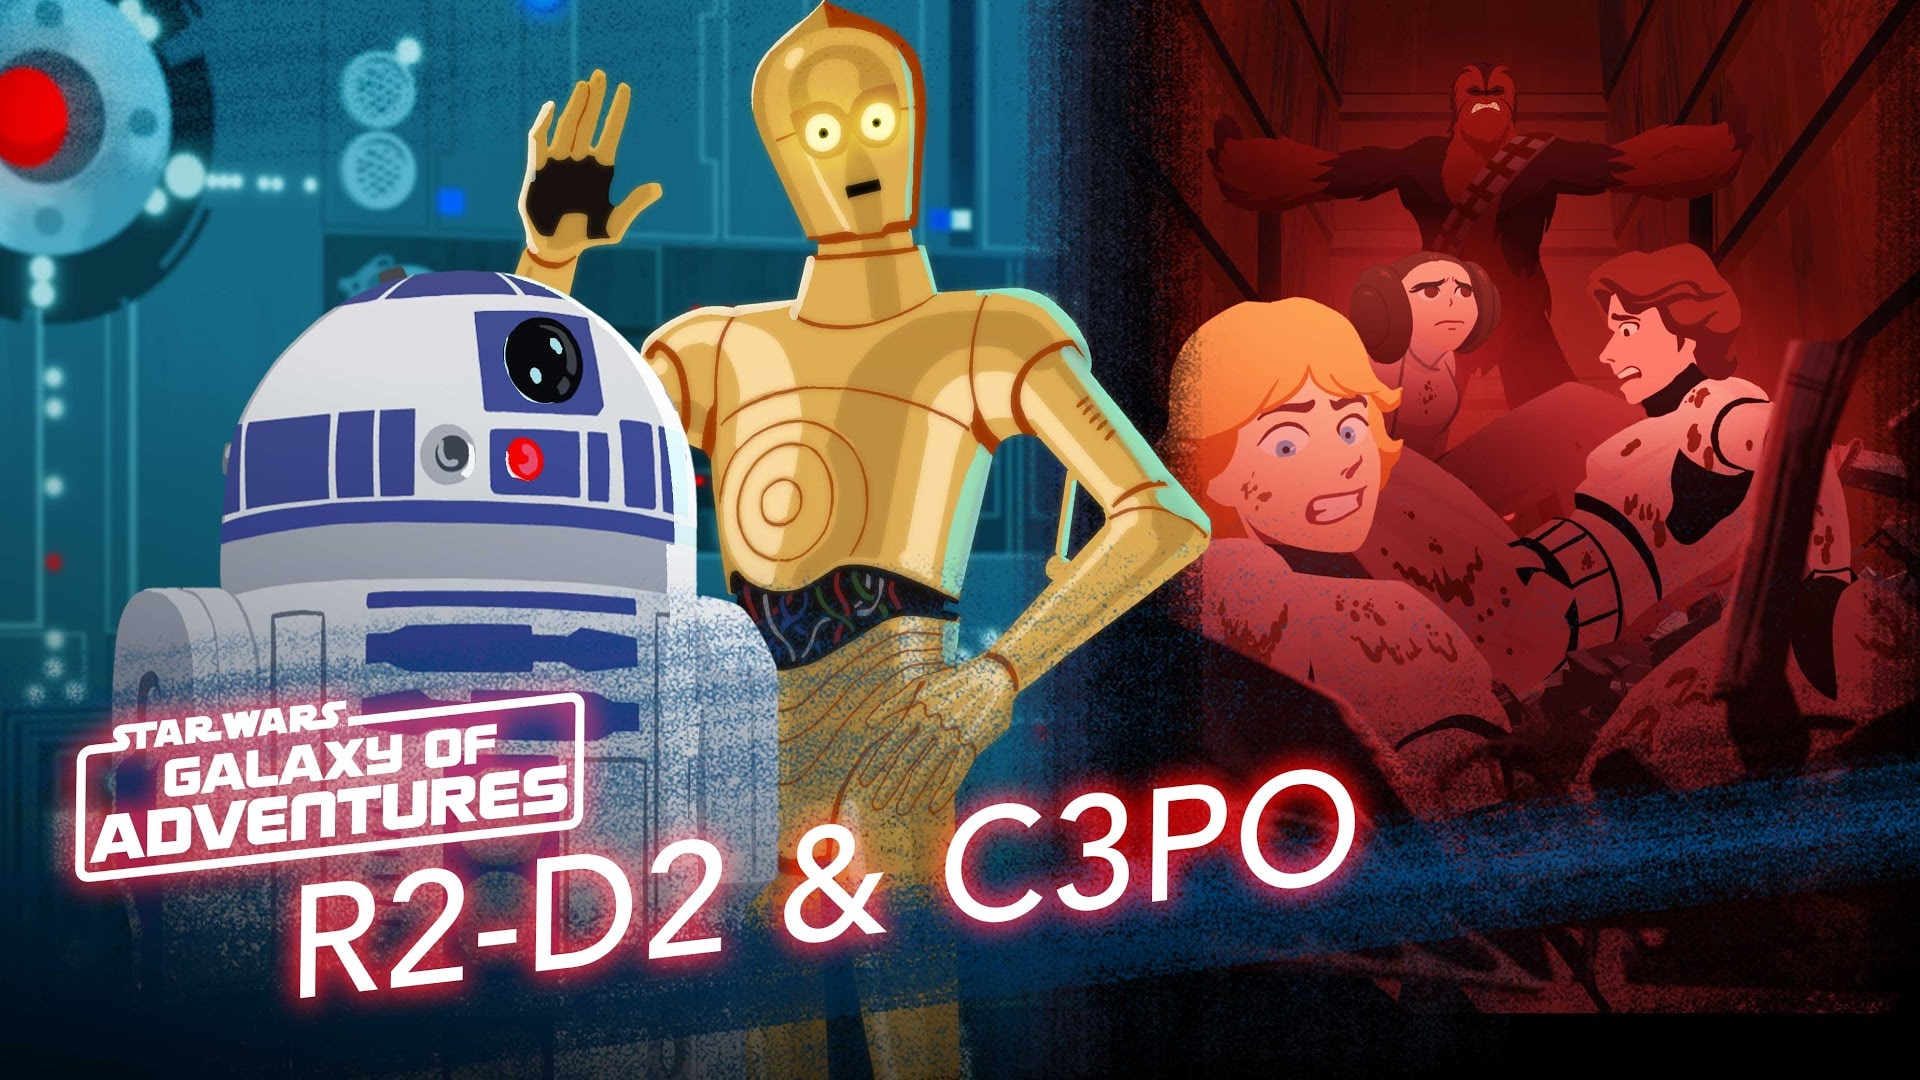 Star Wars Galaxy of Adventures: R2-D2 and C-3PO - Trash Compactor Rescue